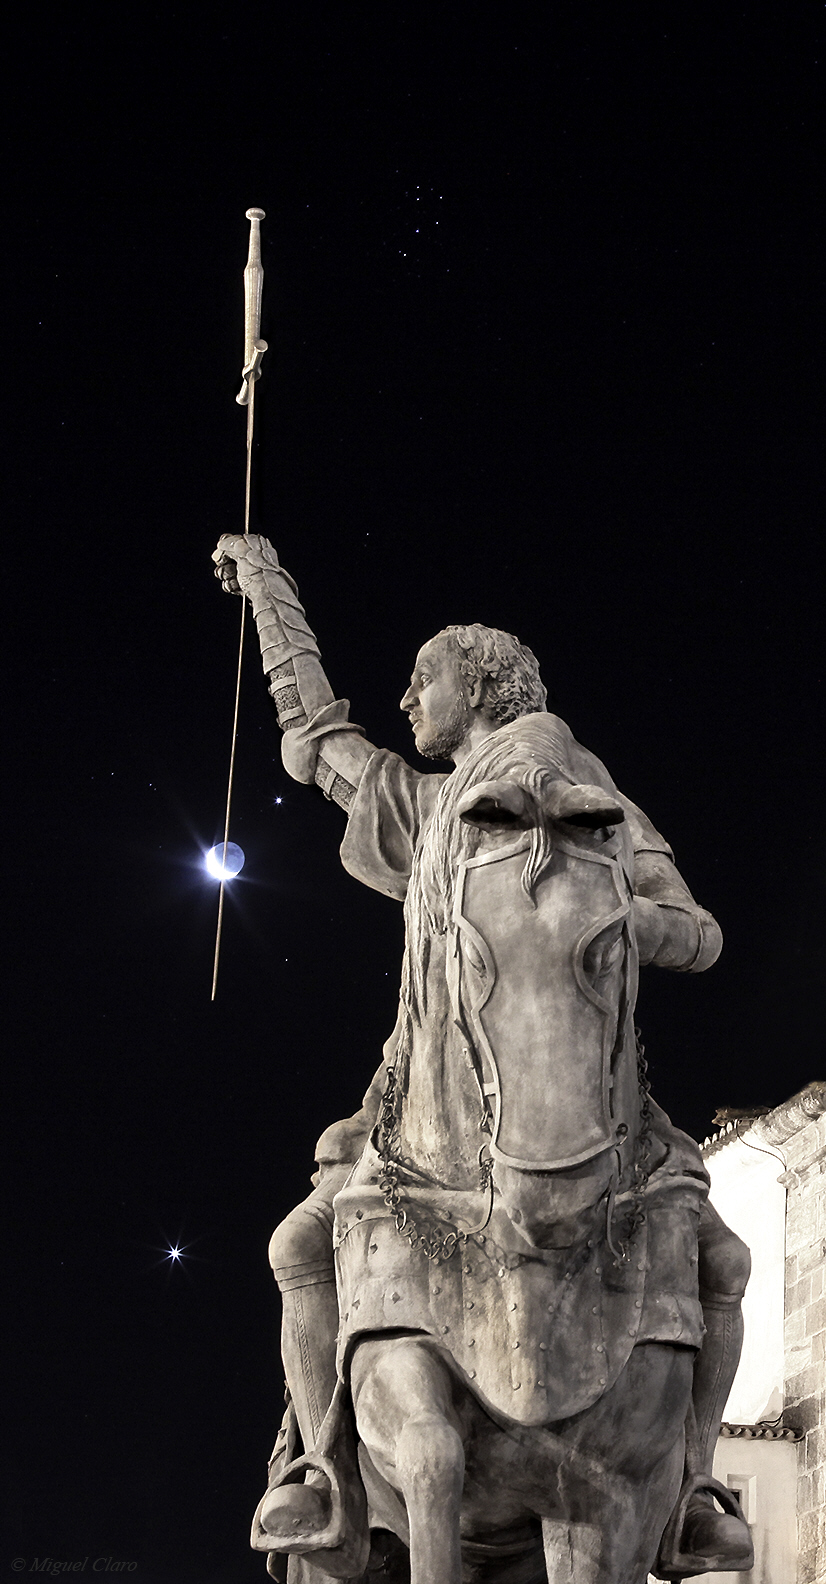 <h5>The Sword alignment – Venus, Moon, Jupiter and Pleiades</h5>